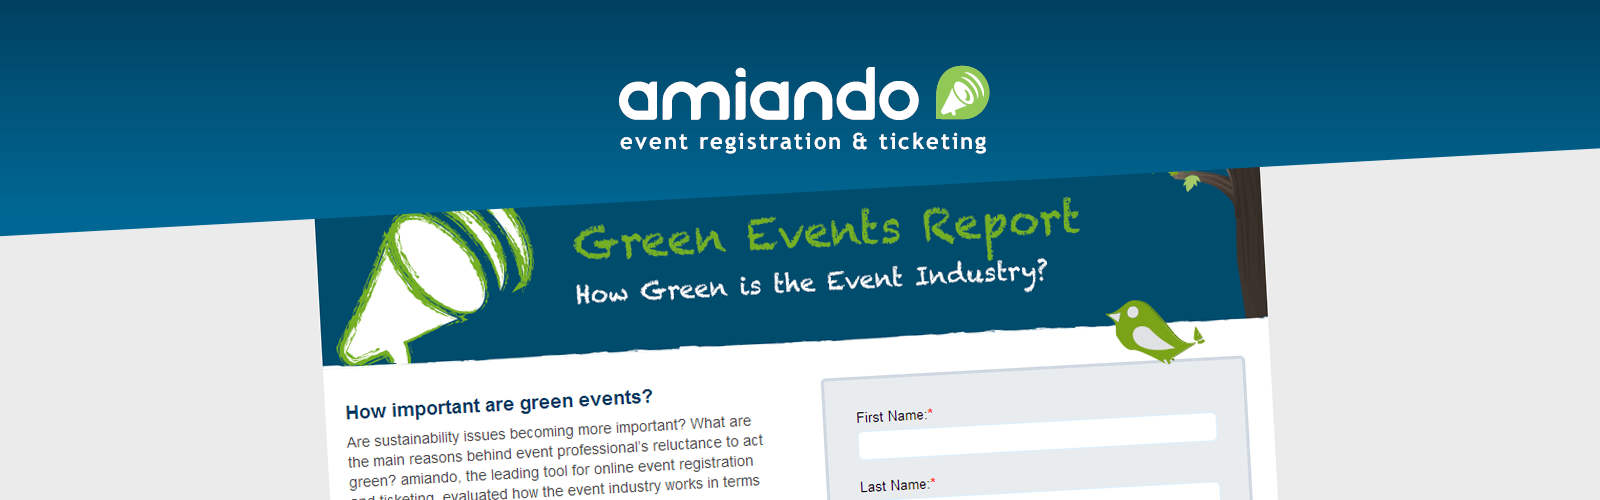 amiando-green-events-report-2013